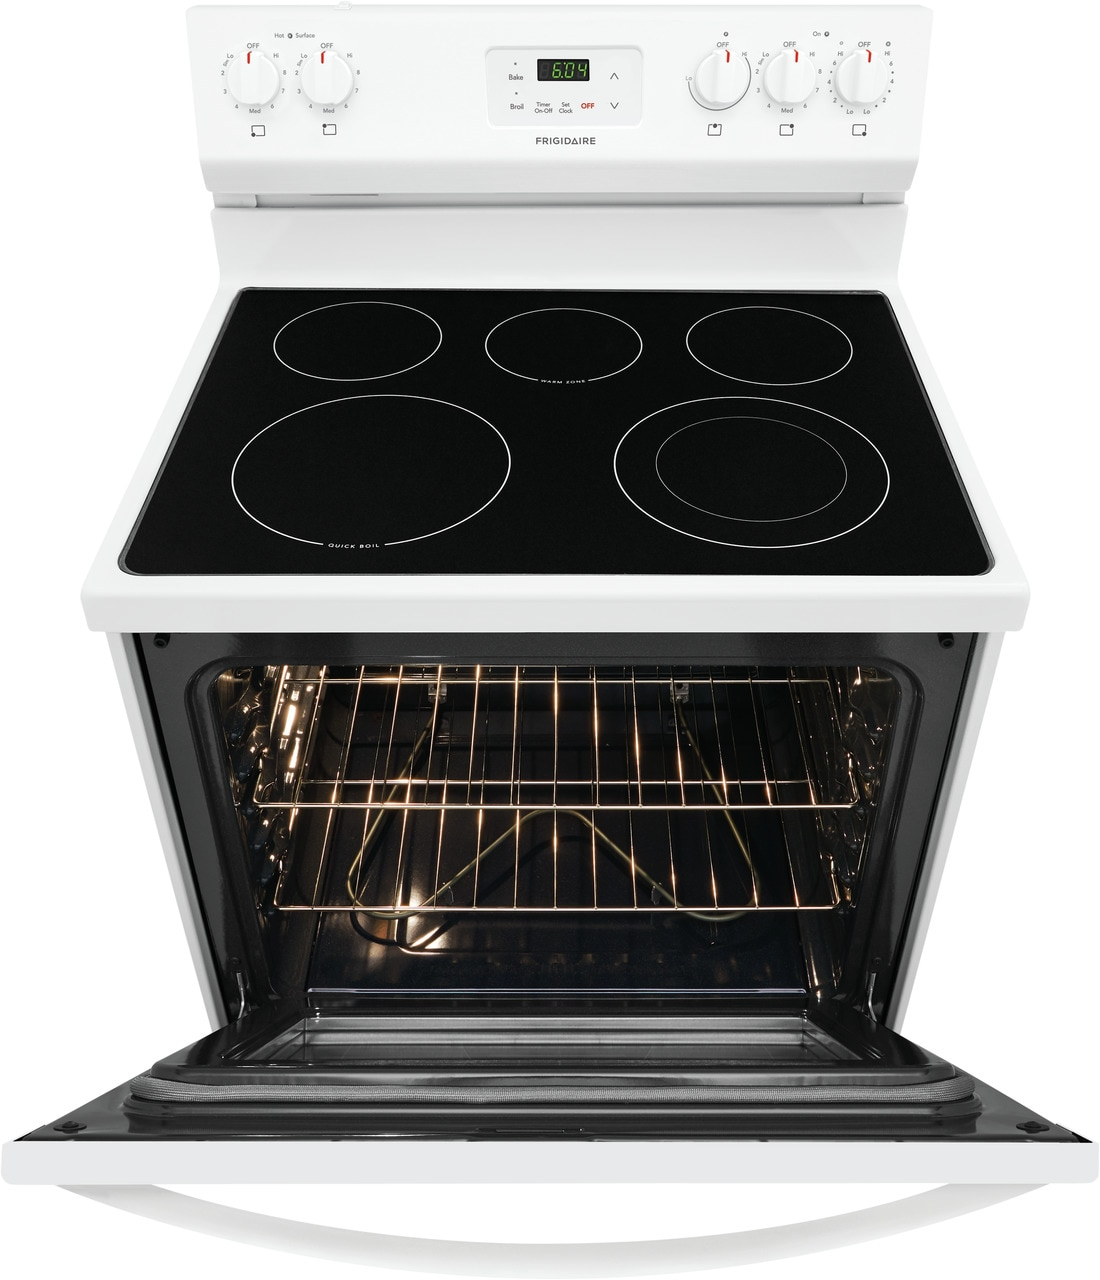 """Model: FCRE3052AW   Frigidaire 30"""" Electric Range"""